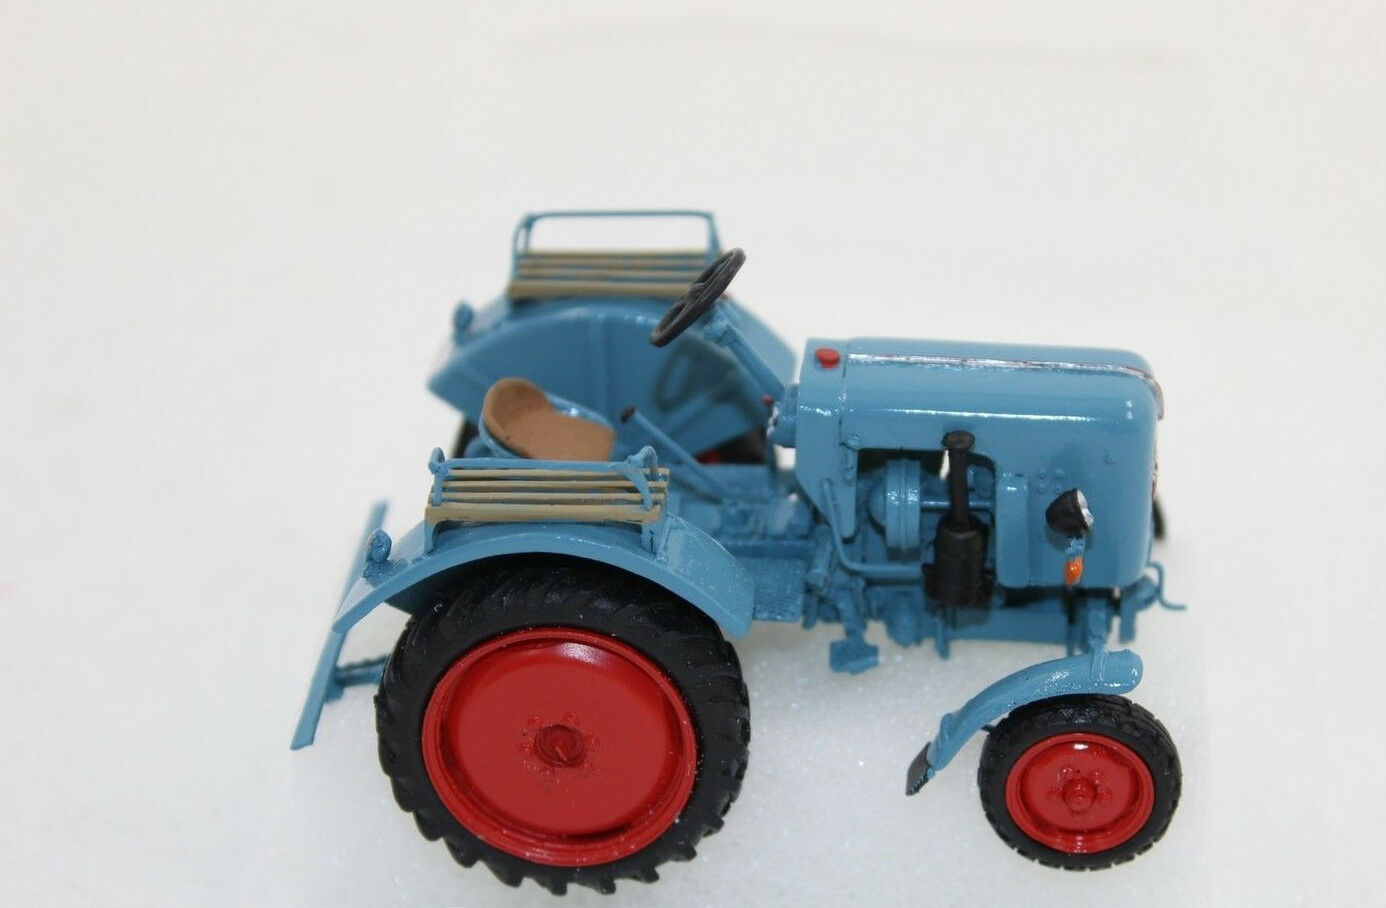 World cup 32001 ed16 eicher tractor 1 3 2 new with original packaging